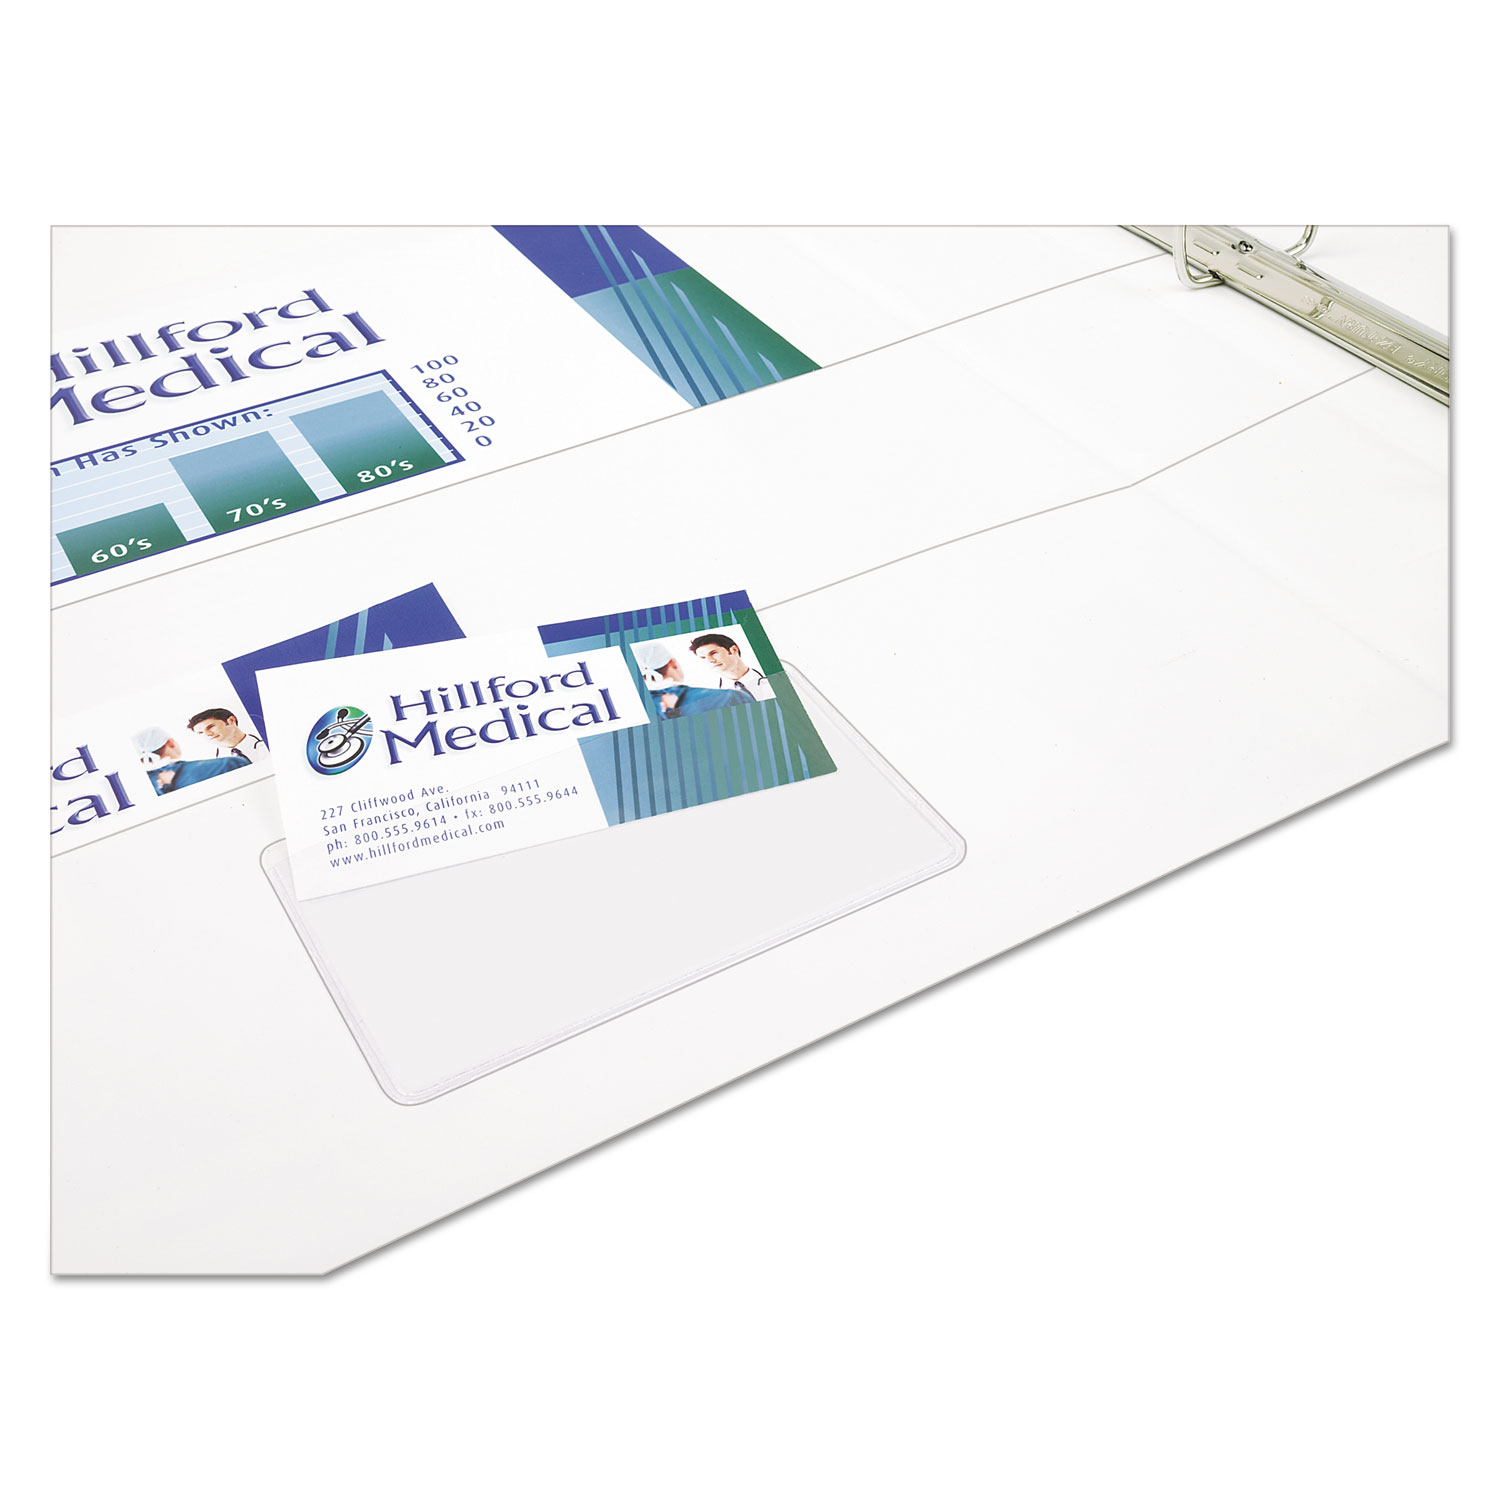 Self adhesive business card holders by avery ave73720 self adhesive business card holders top load 3 12 x 2 clear 10pack reheart Choice Image